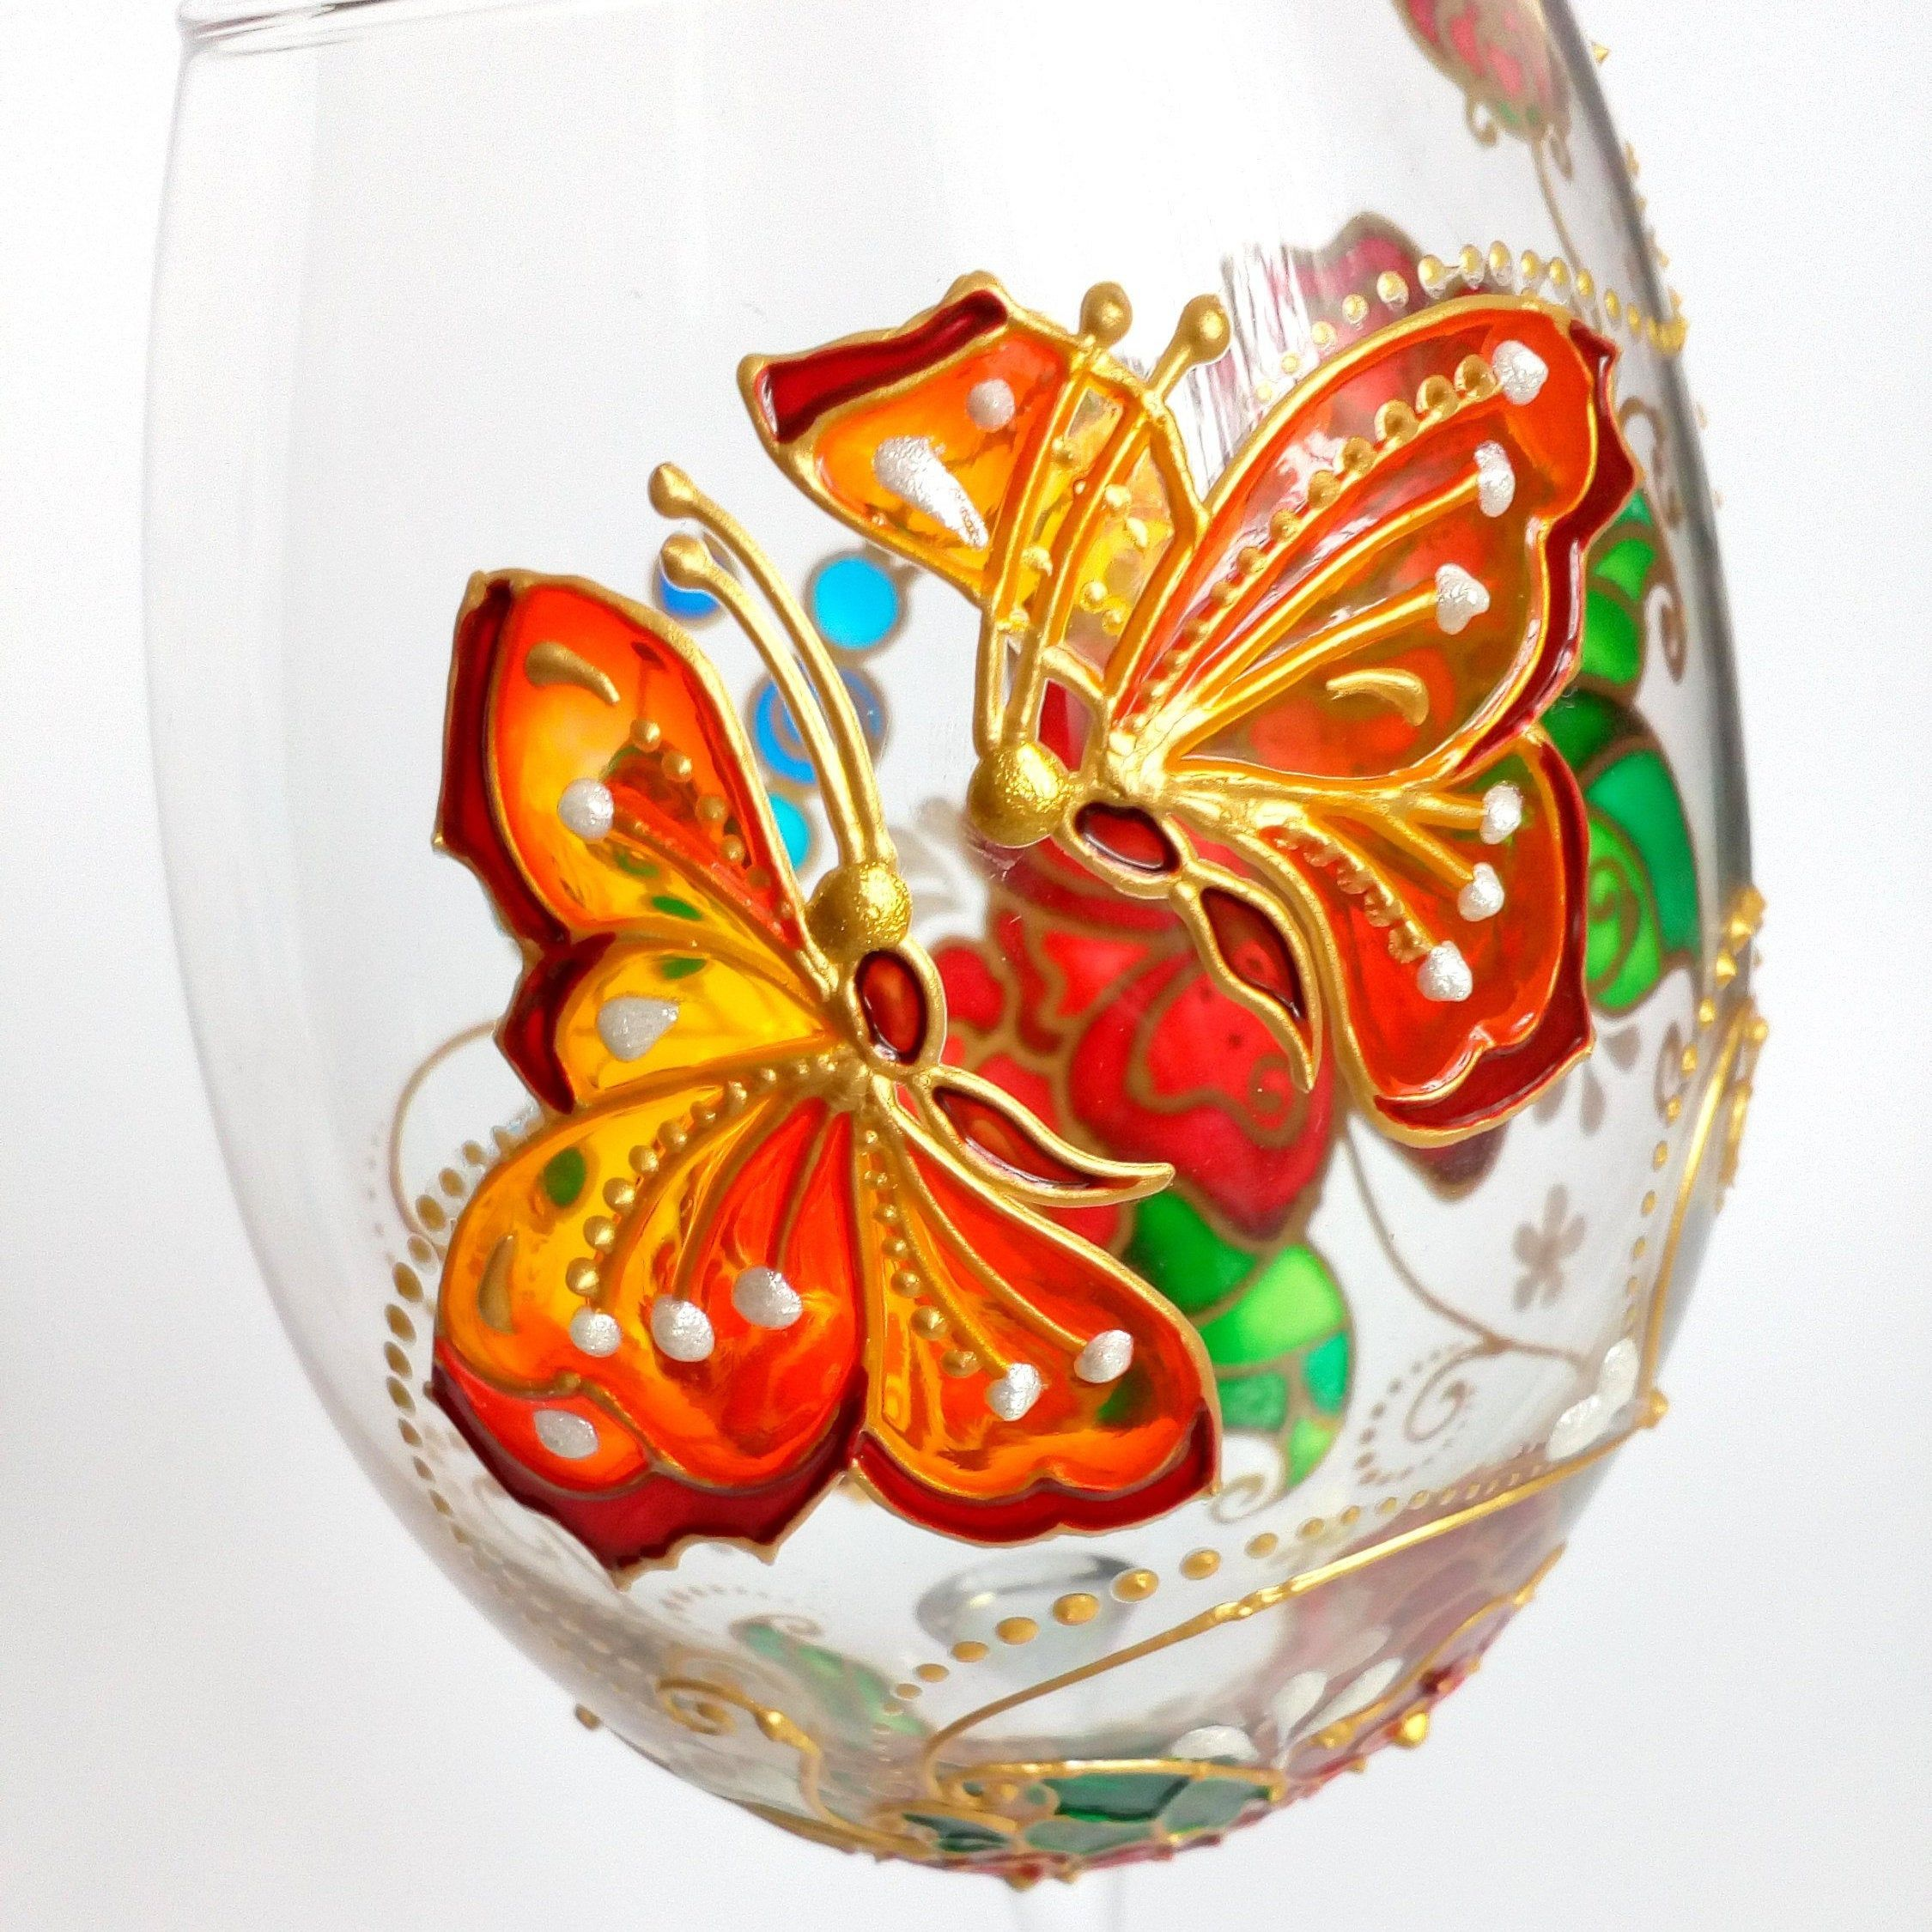 Butterfly Wine Glass Hand Painted Handmade Personalised Gift Etsy Hand Painted Wine Glass Handmade Personalized Gifts Hand Painted Wine Glasses